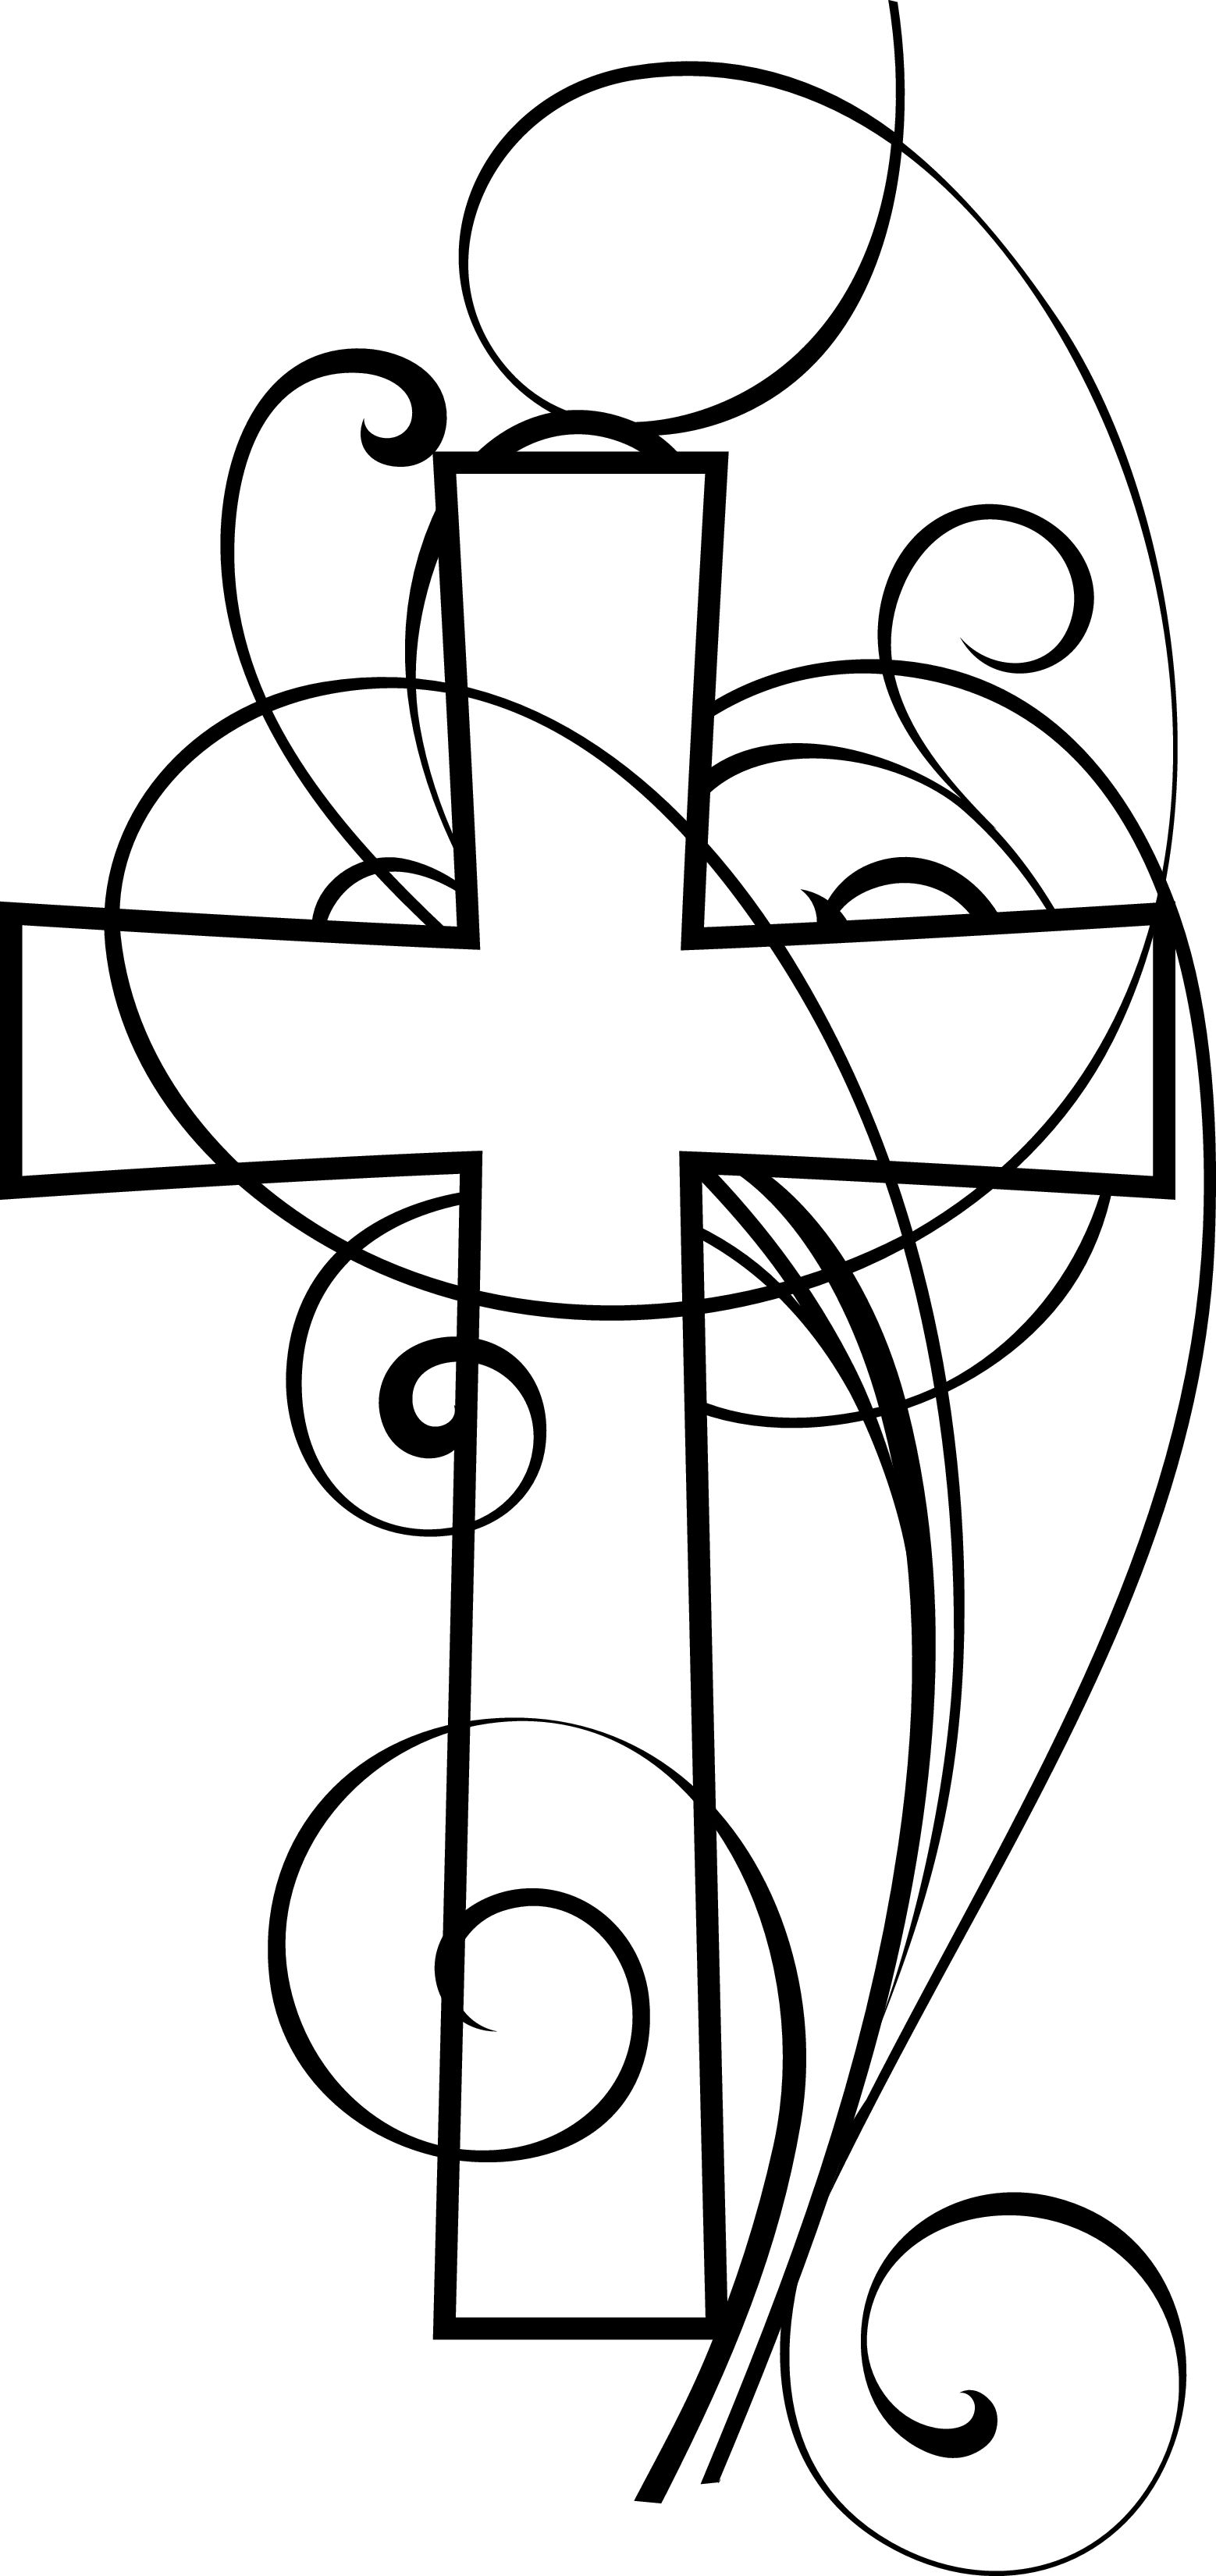 Drawing clipart art drawing. Cross google search bible